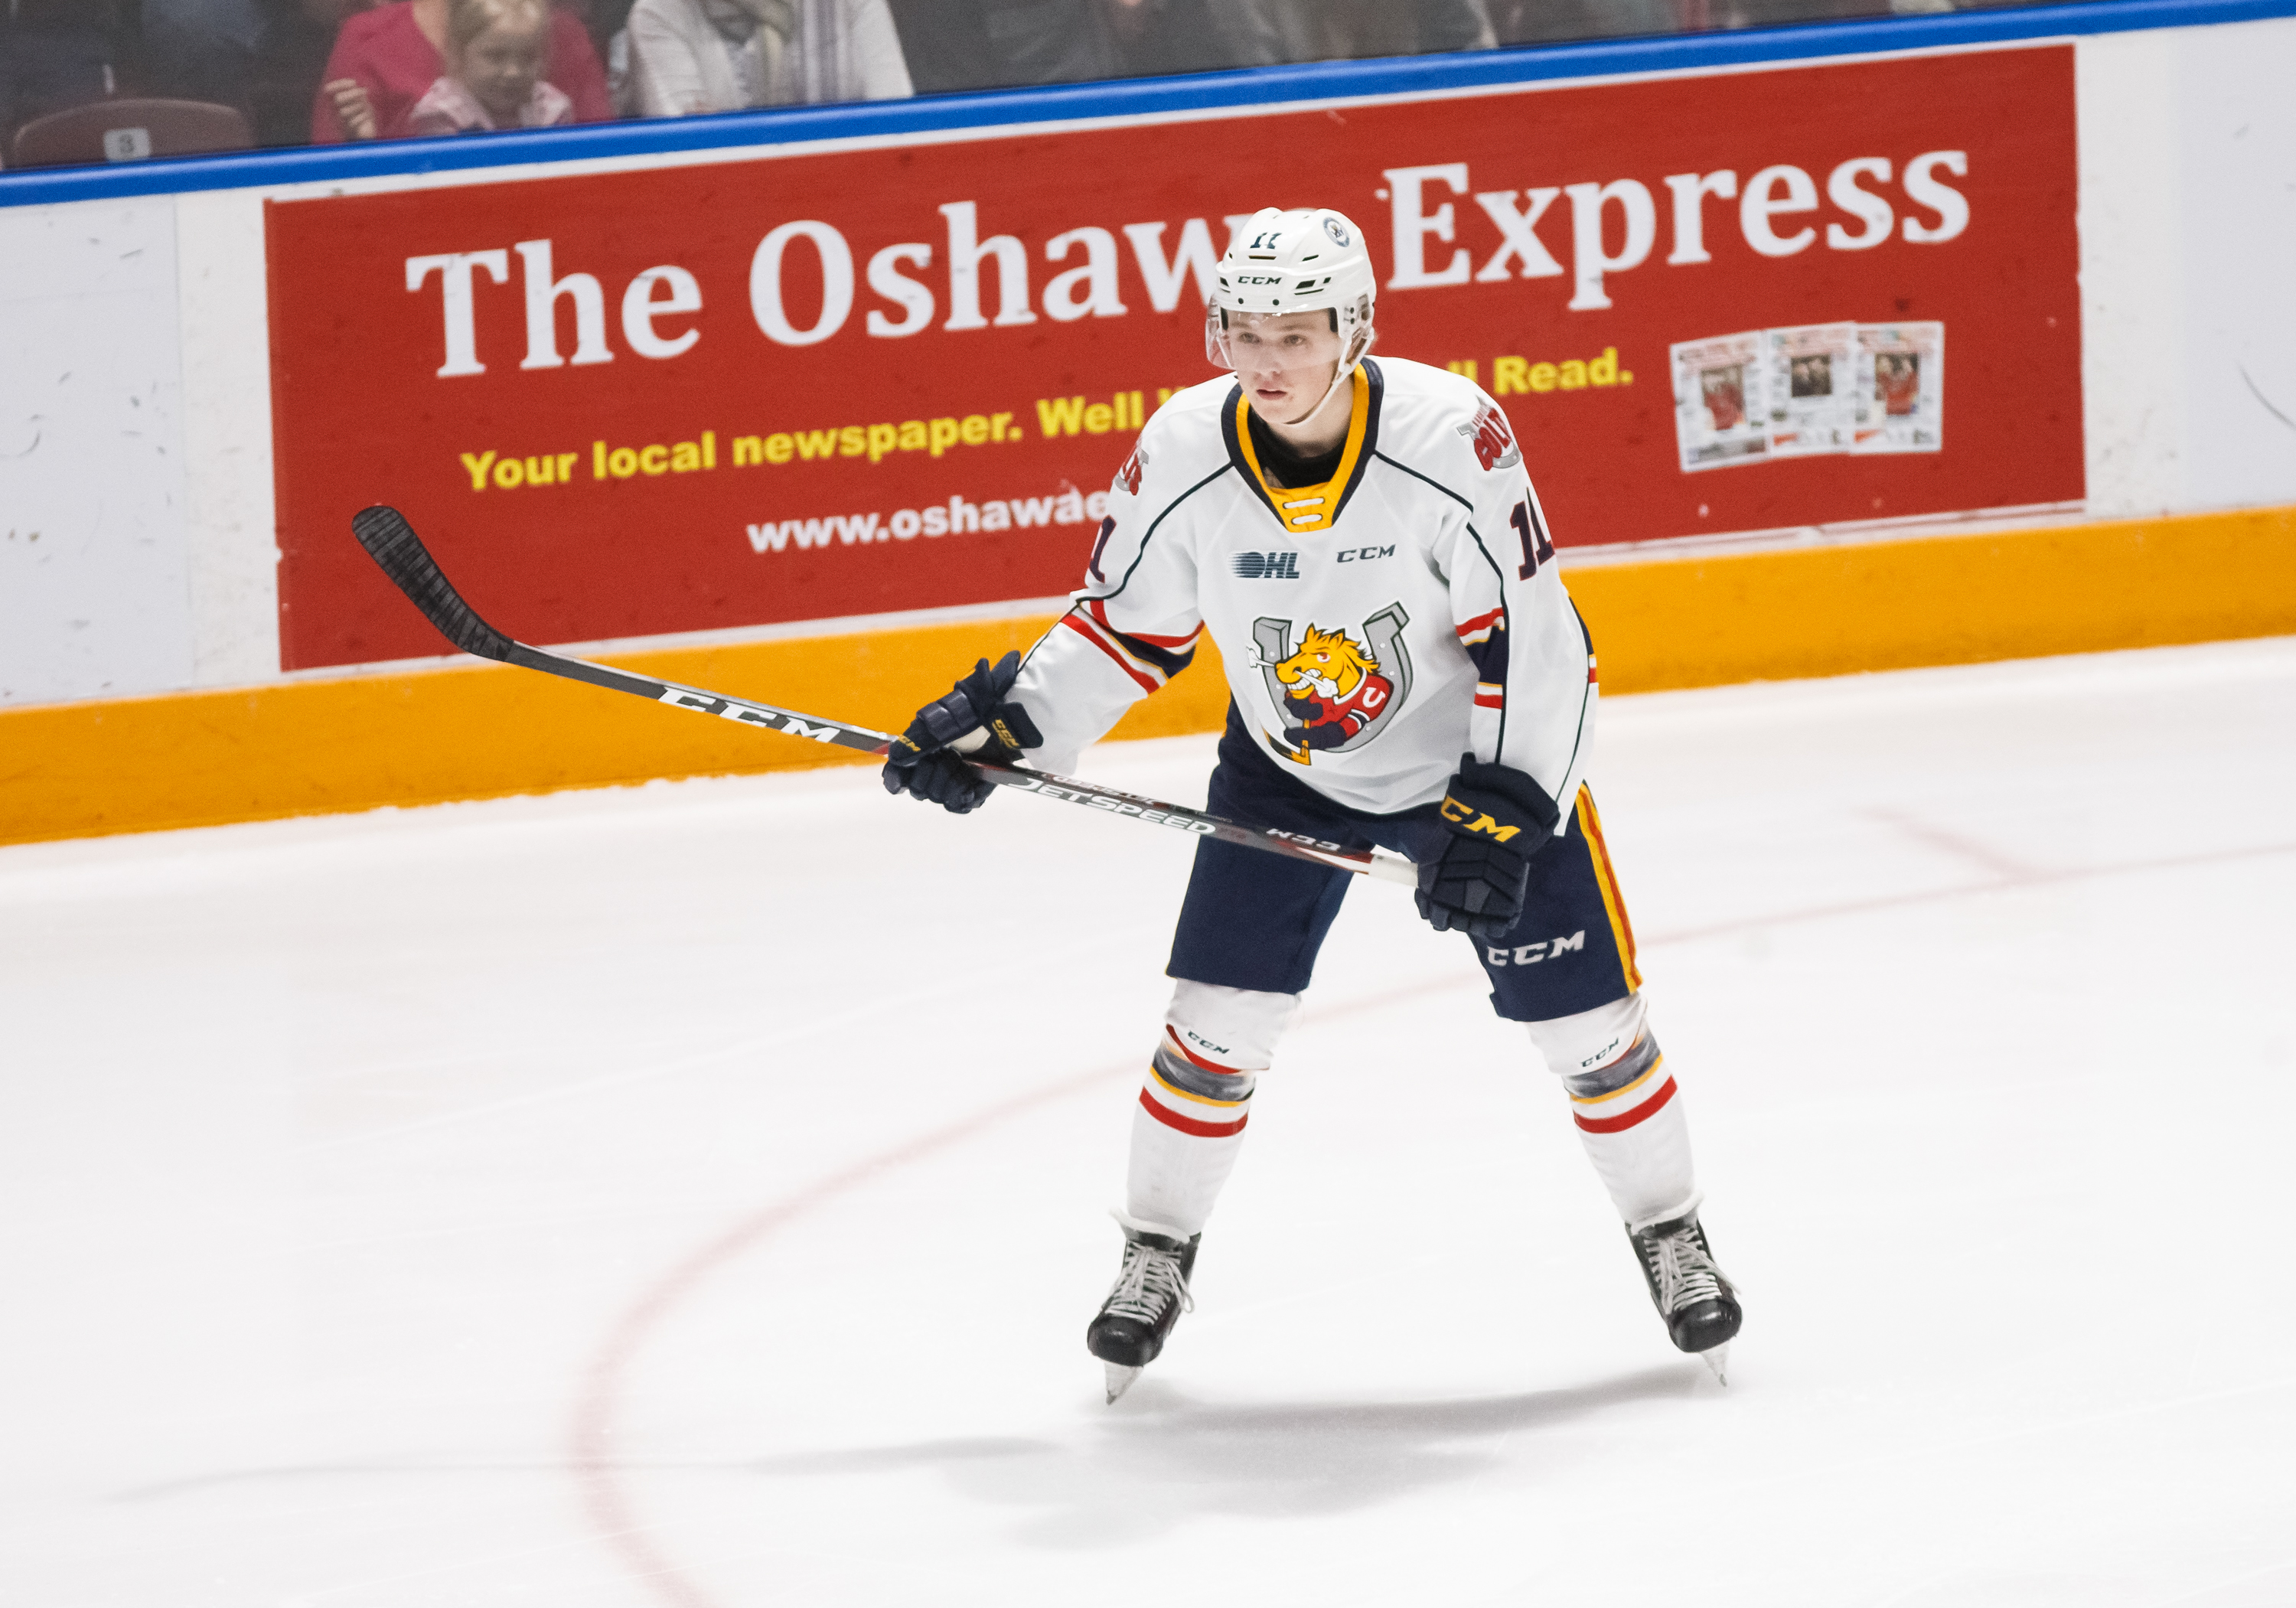 Ethan Cardwell #11 of the Barrie Colts looks on during an OHL game against the Oshawa Generals at the Tribute Communities Centre on January 26, 2020 in Oshawa, Ontario, Canada.